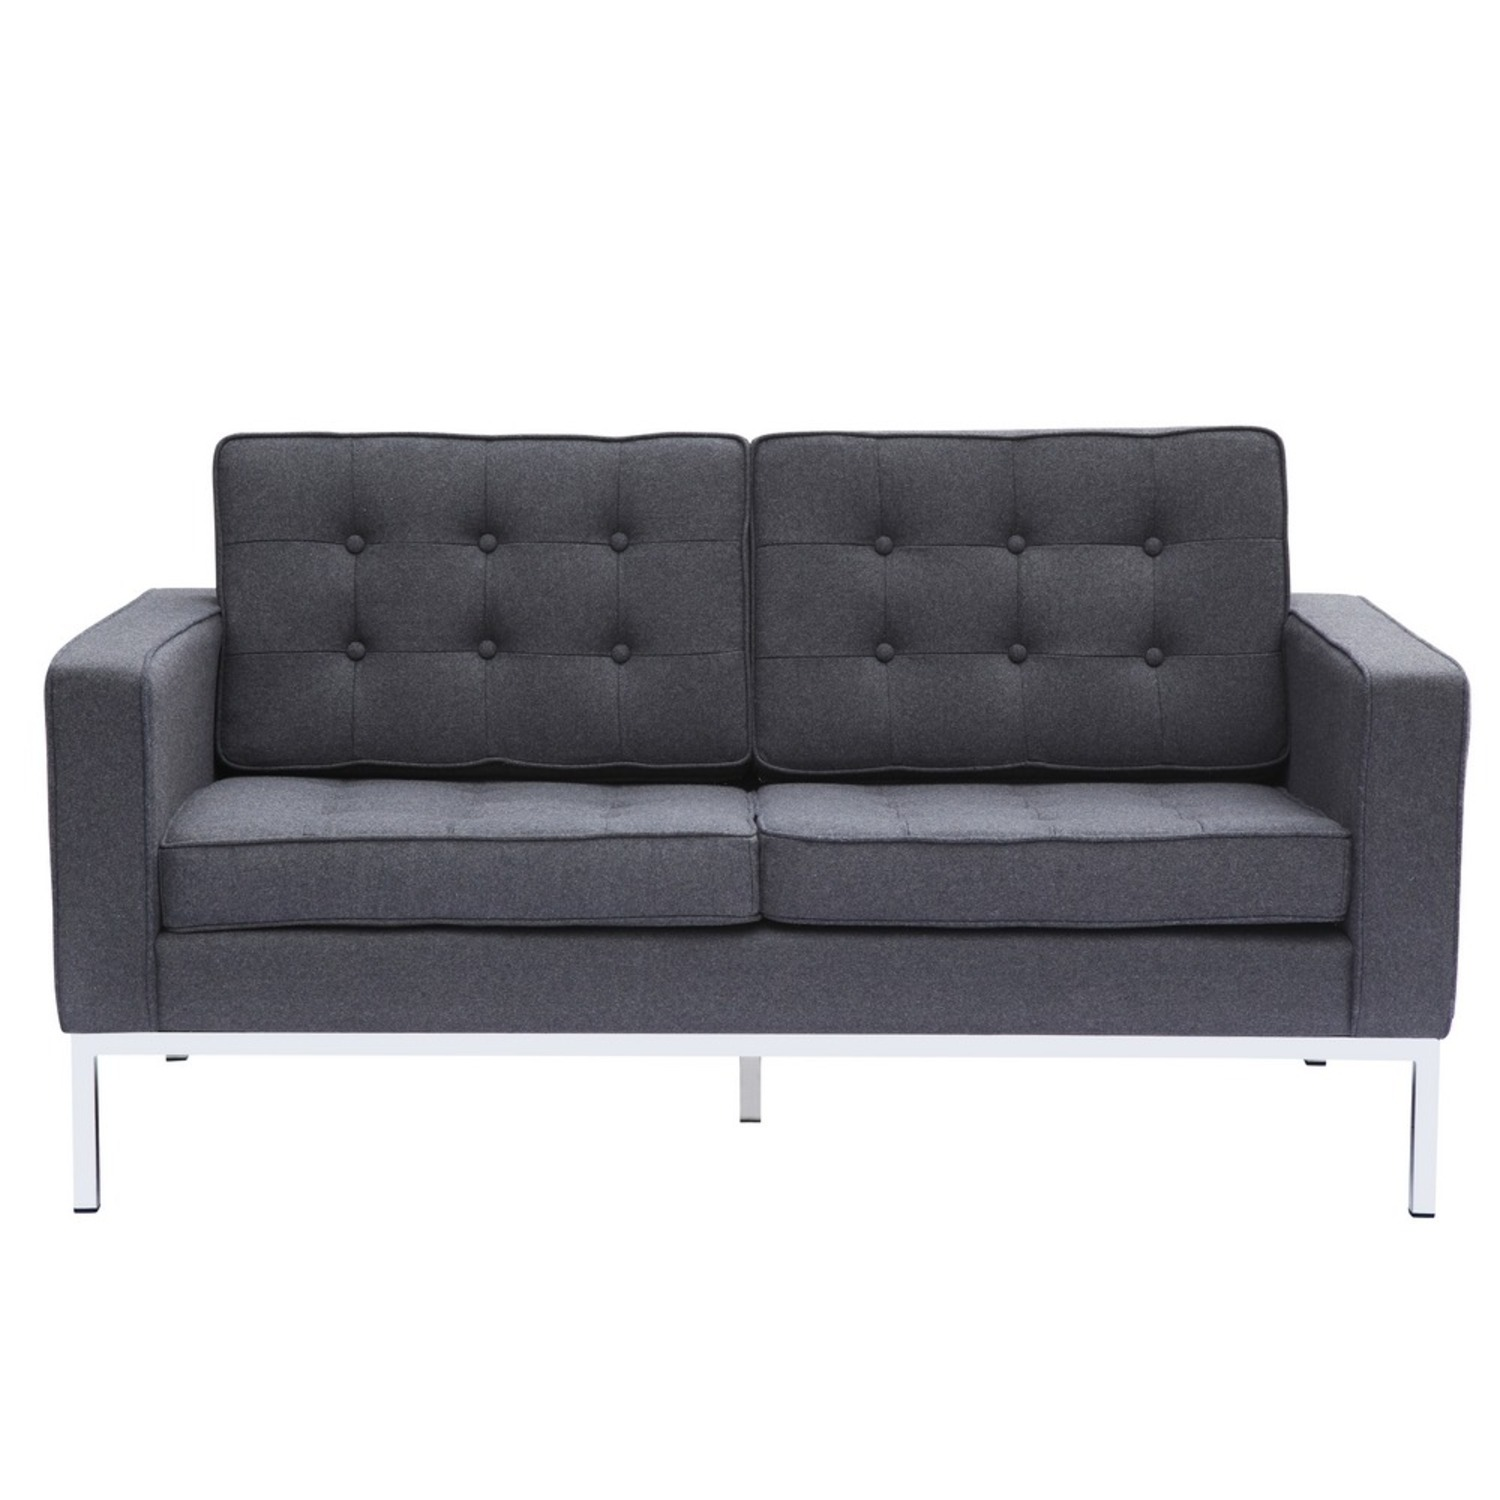 Contemporary Loveseat In Gray Wool Fabric - image-5